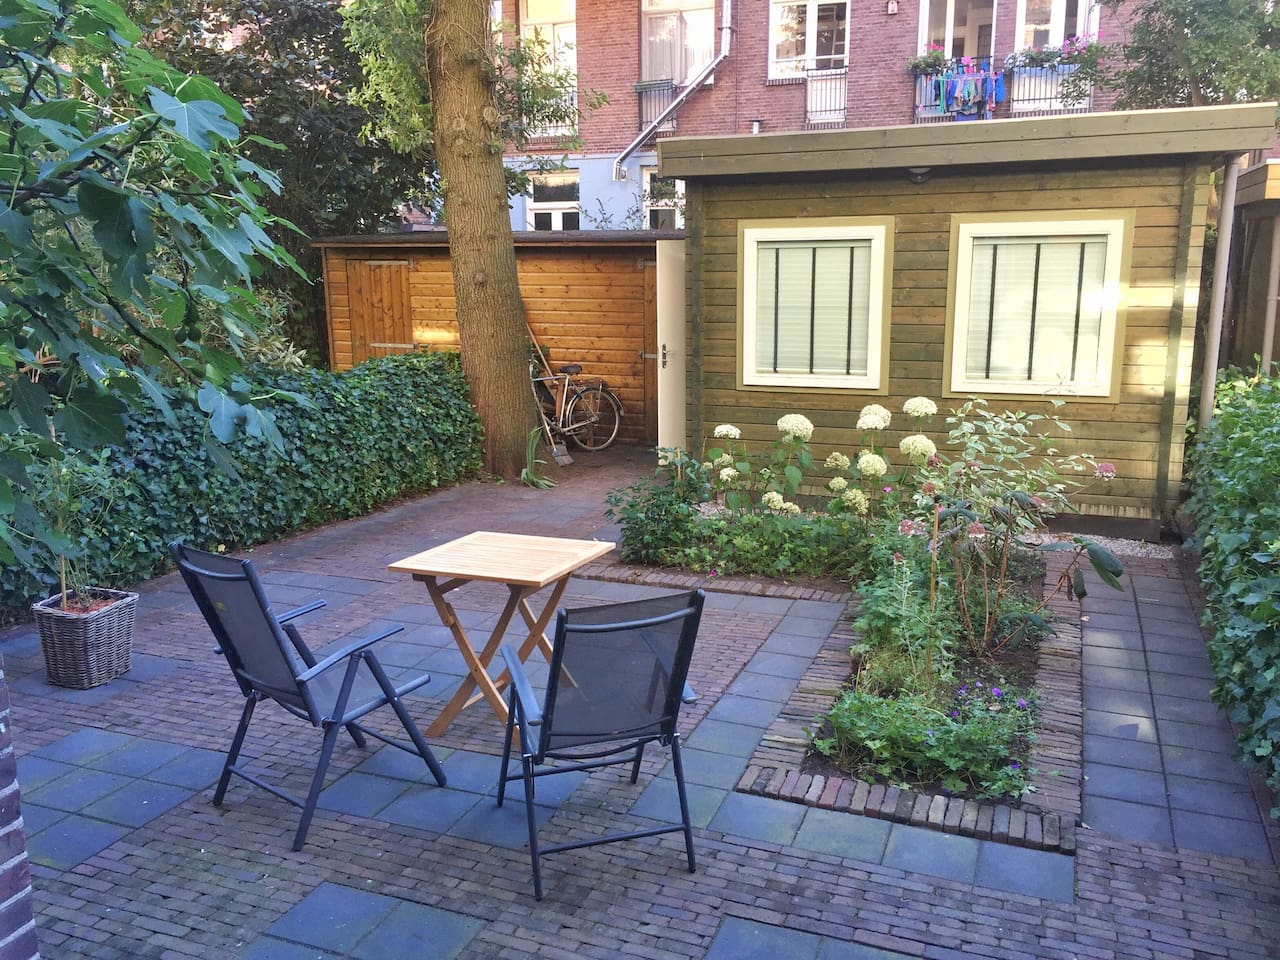 The big quiet garden at the backside of the ground floor apartment.